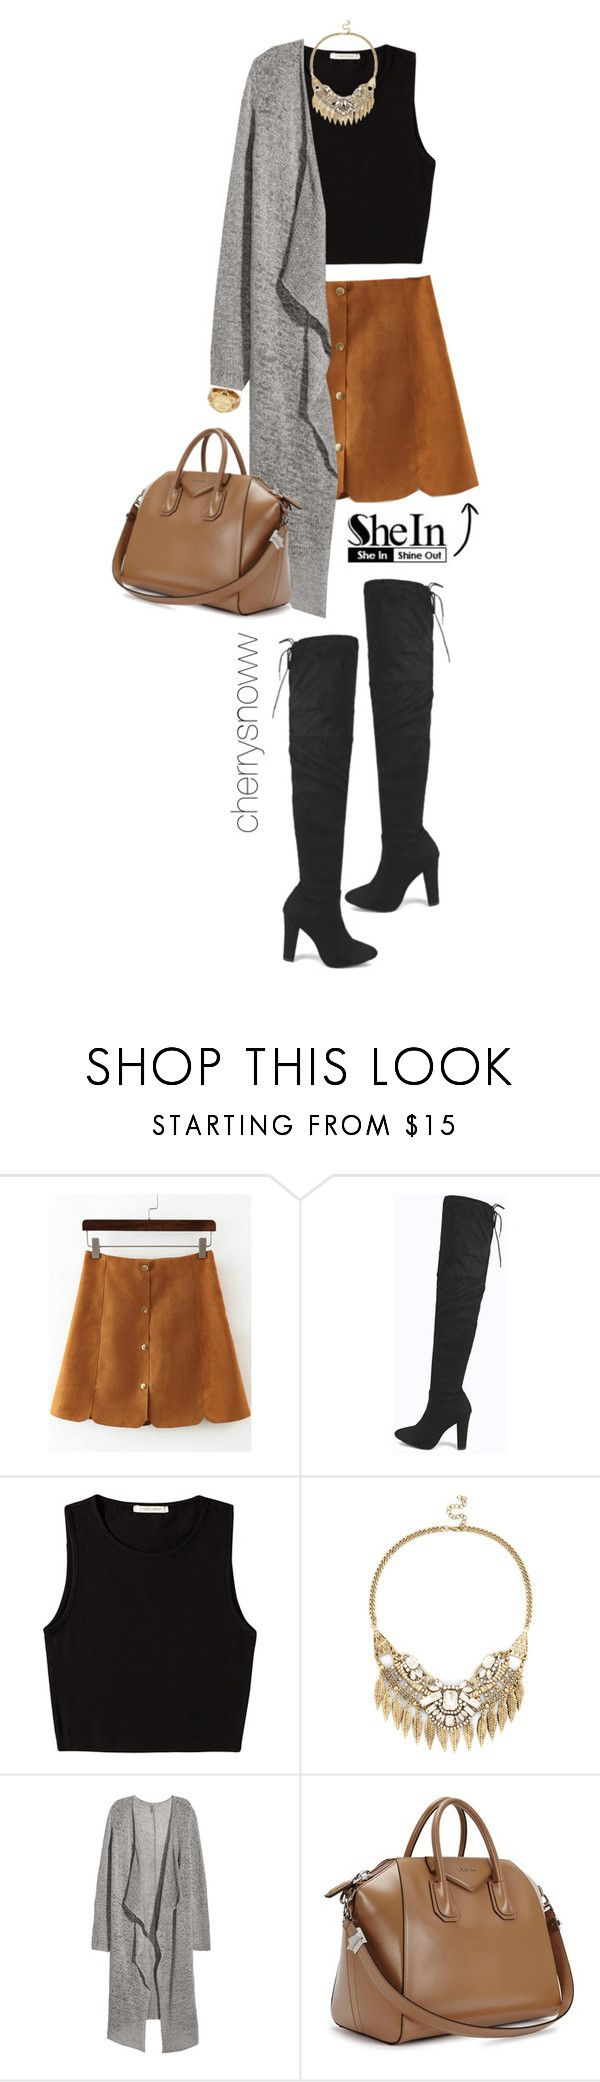 """""""Over the knee boots, suede skirt and long cardigan fall outfit"""" by cherrysnoww ❤ liked on Polyvore featuring Boohoo, Pieces, Sole Society, H&M, Givenchy and Michael Kors"""